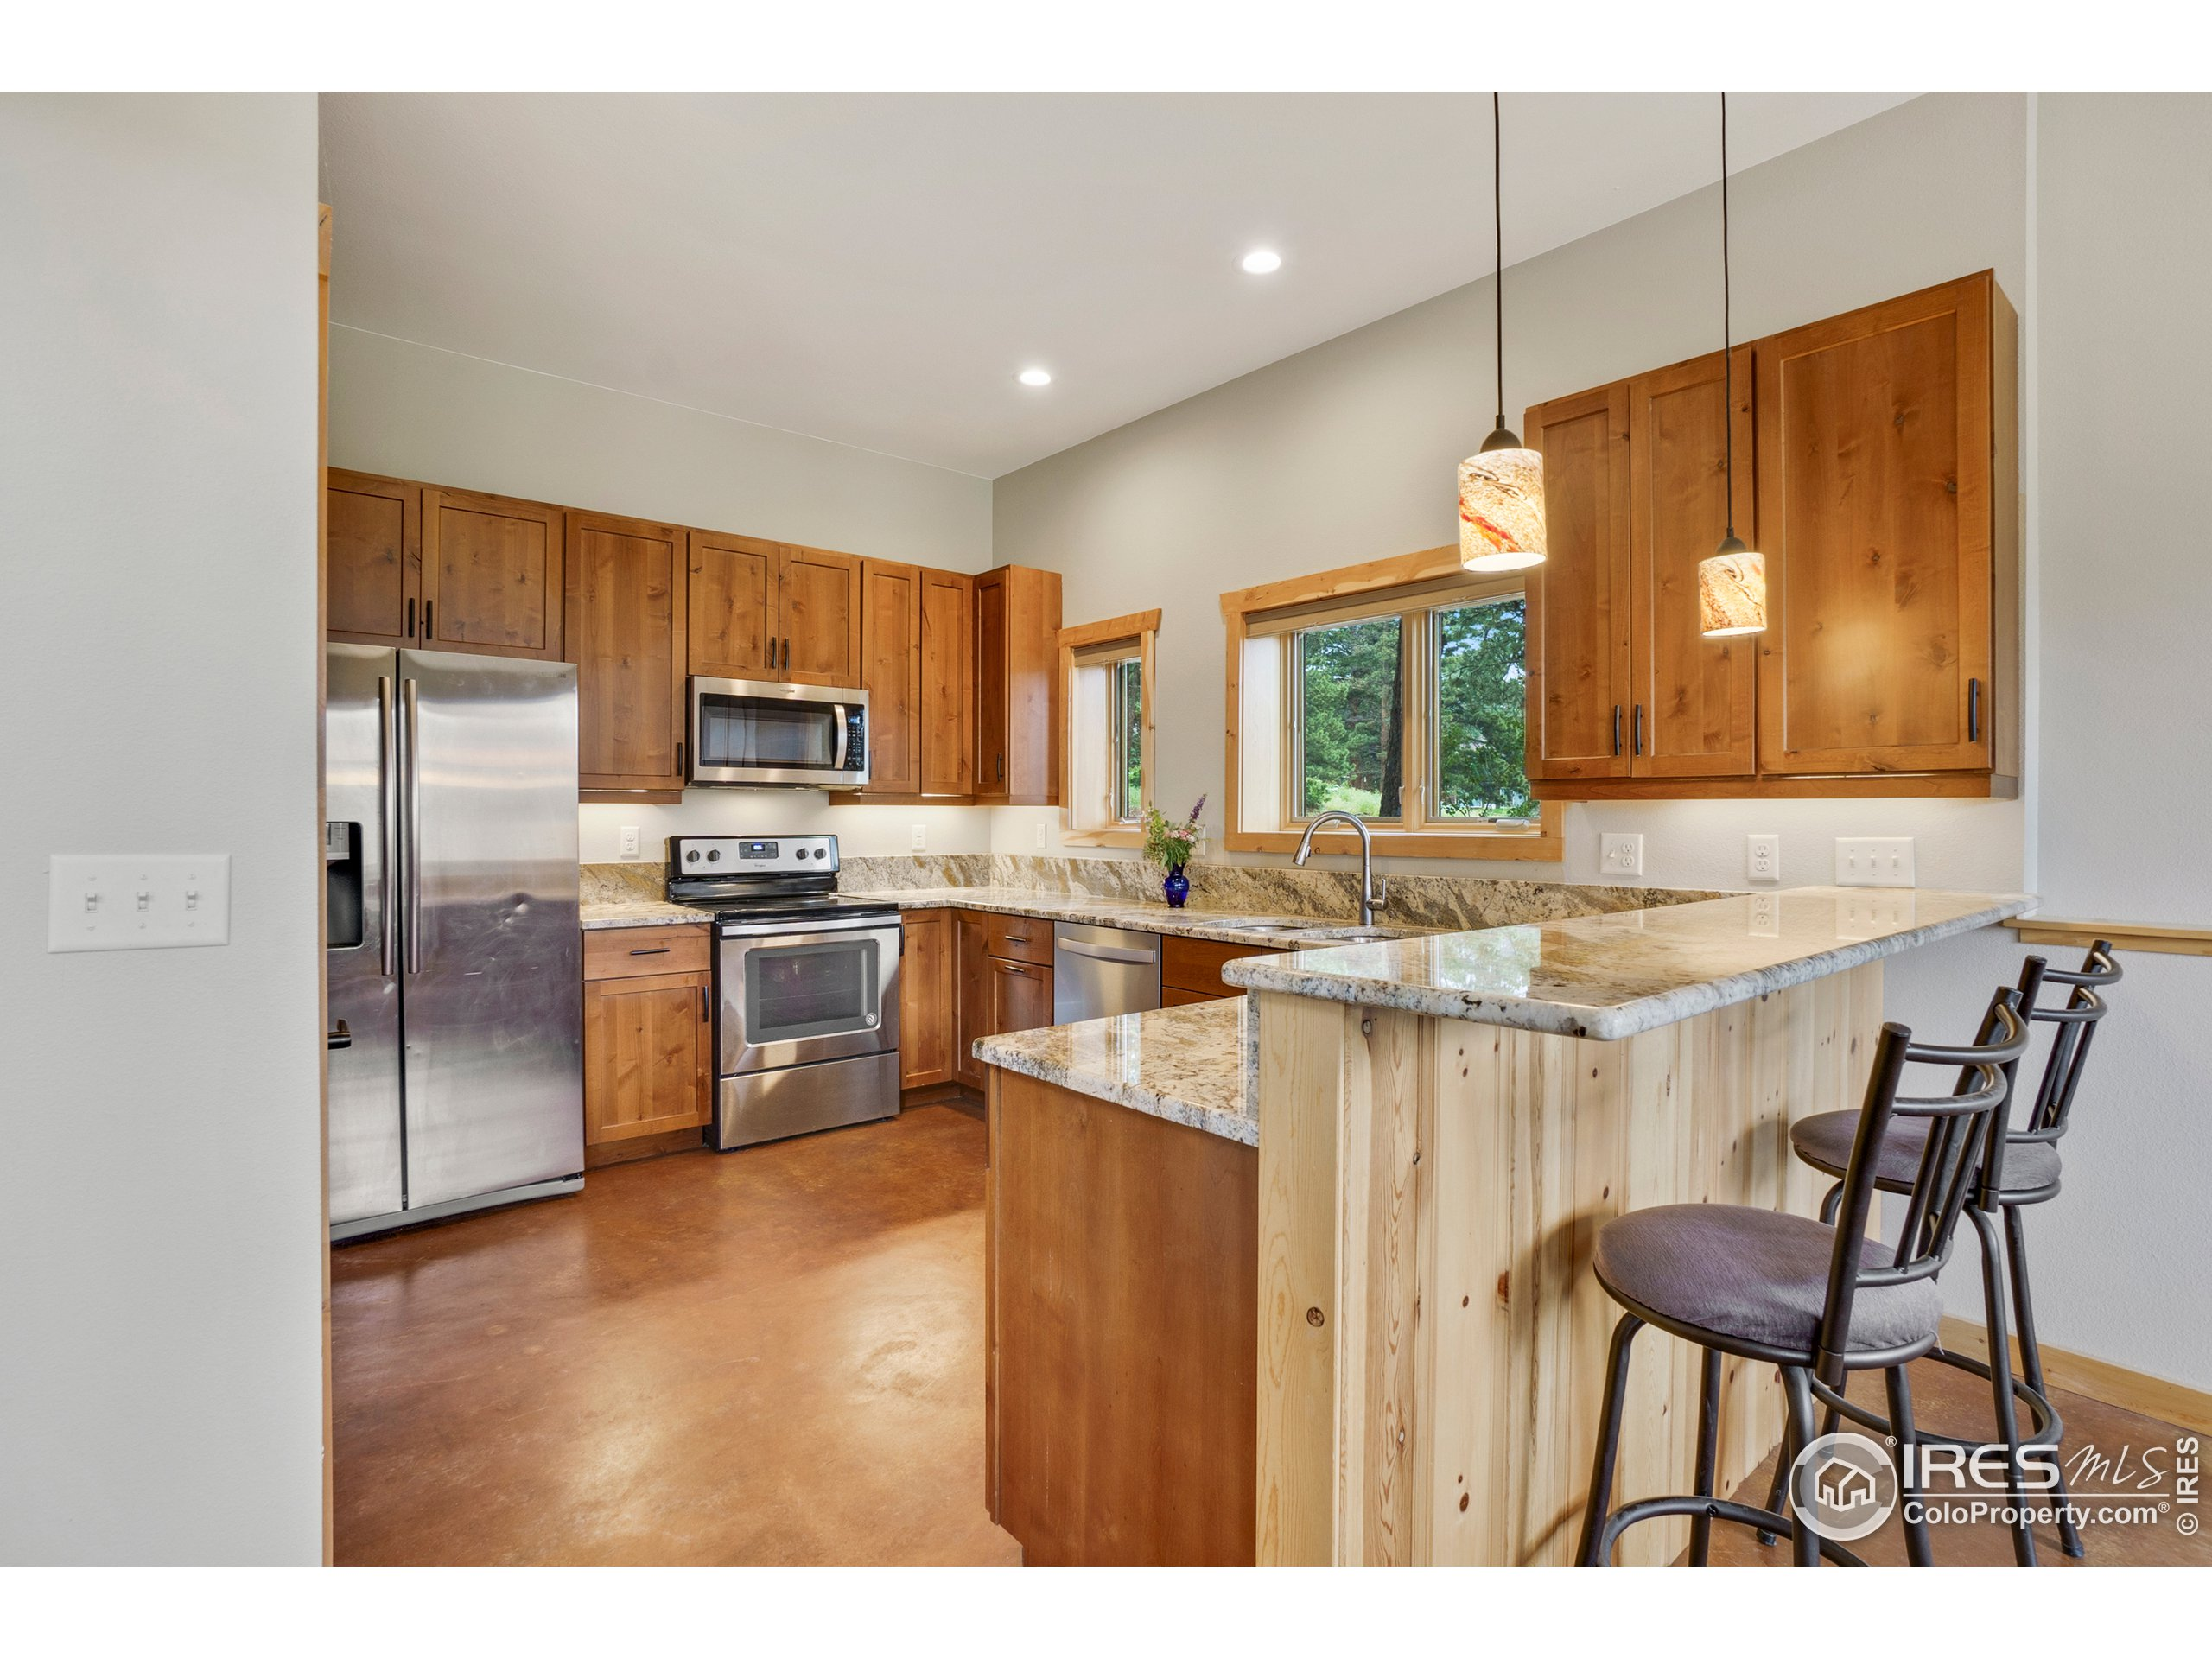 New construction on this mountain modern kitchen